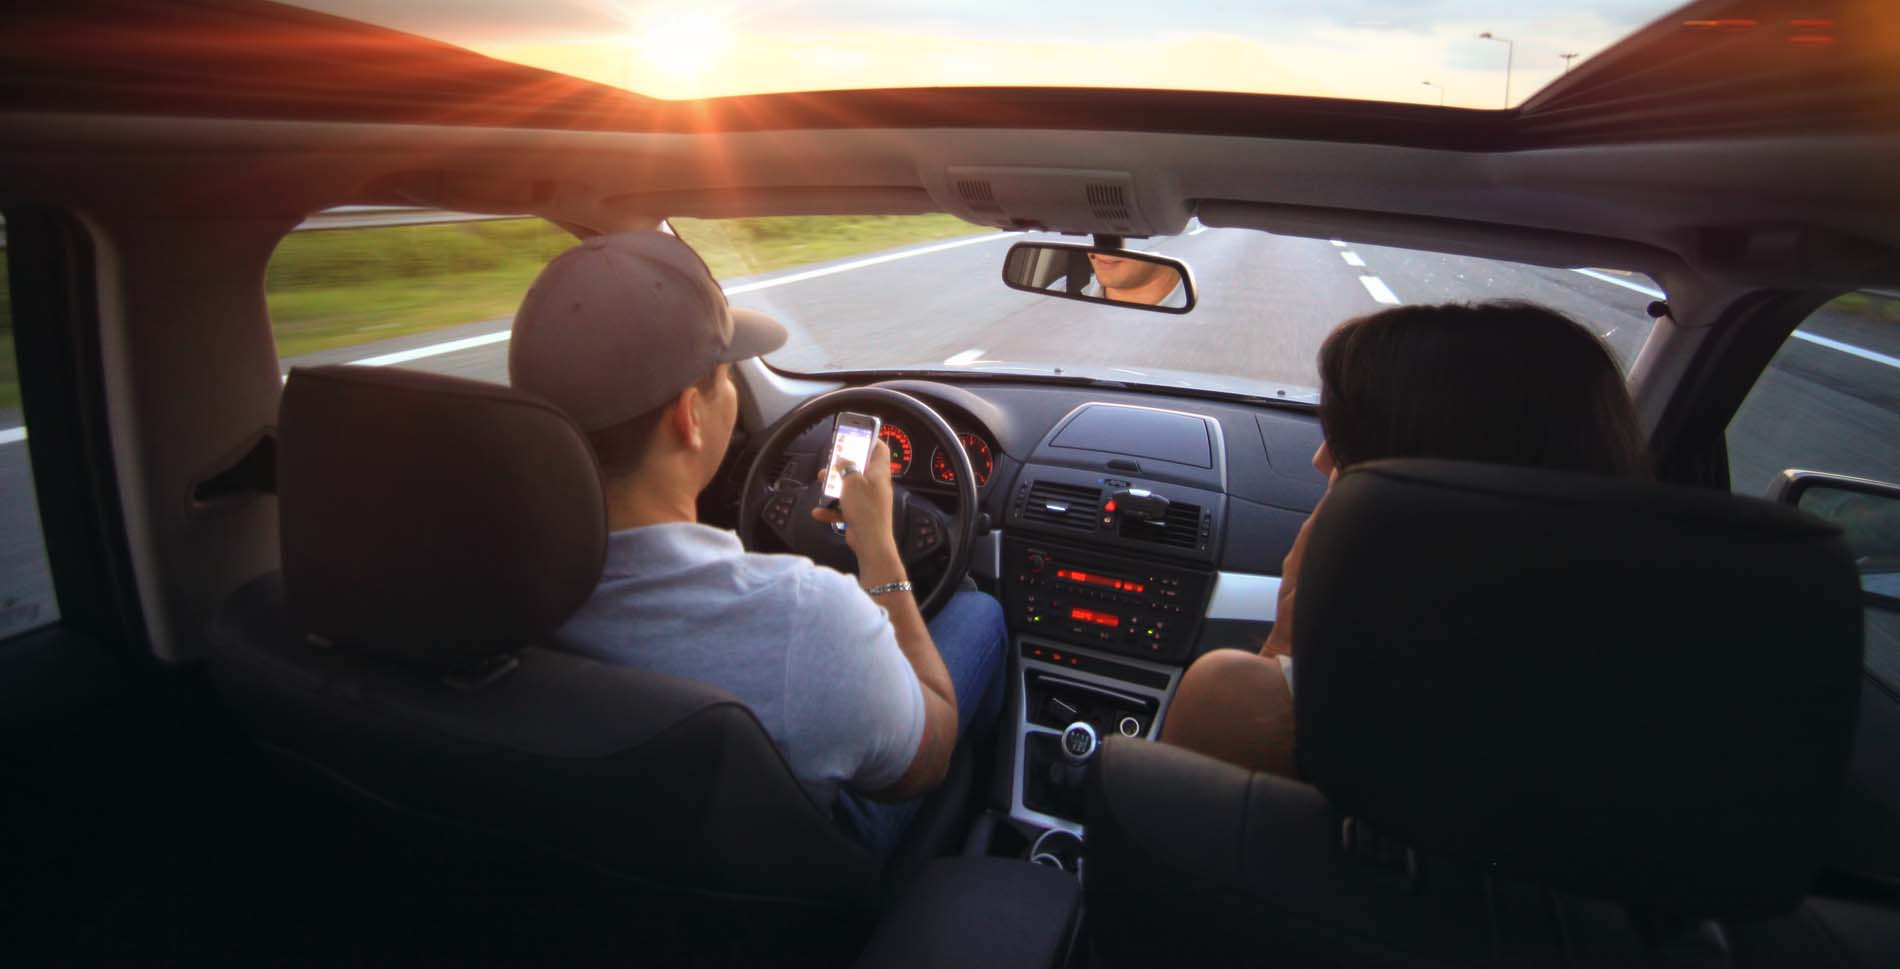 distracted highway driving safety systems